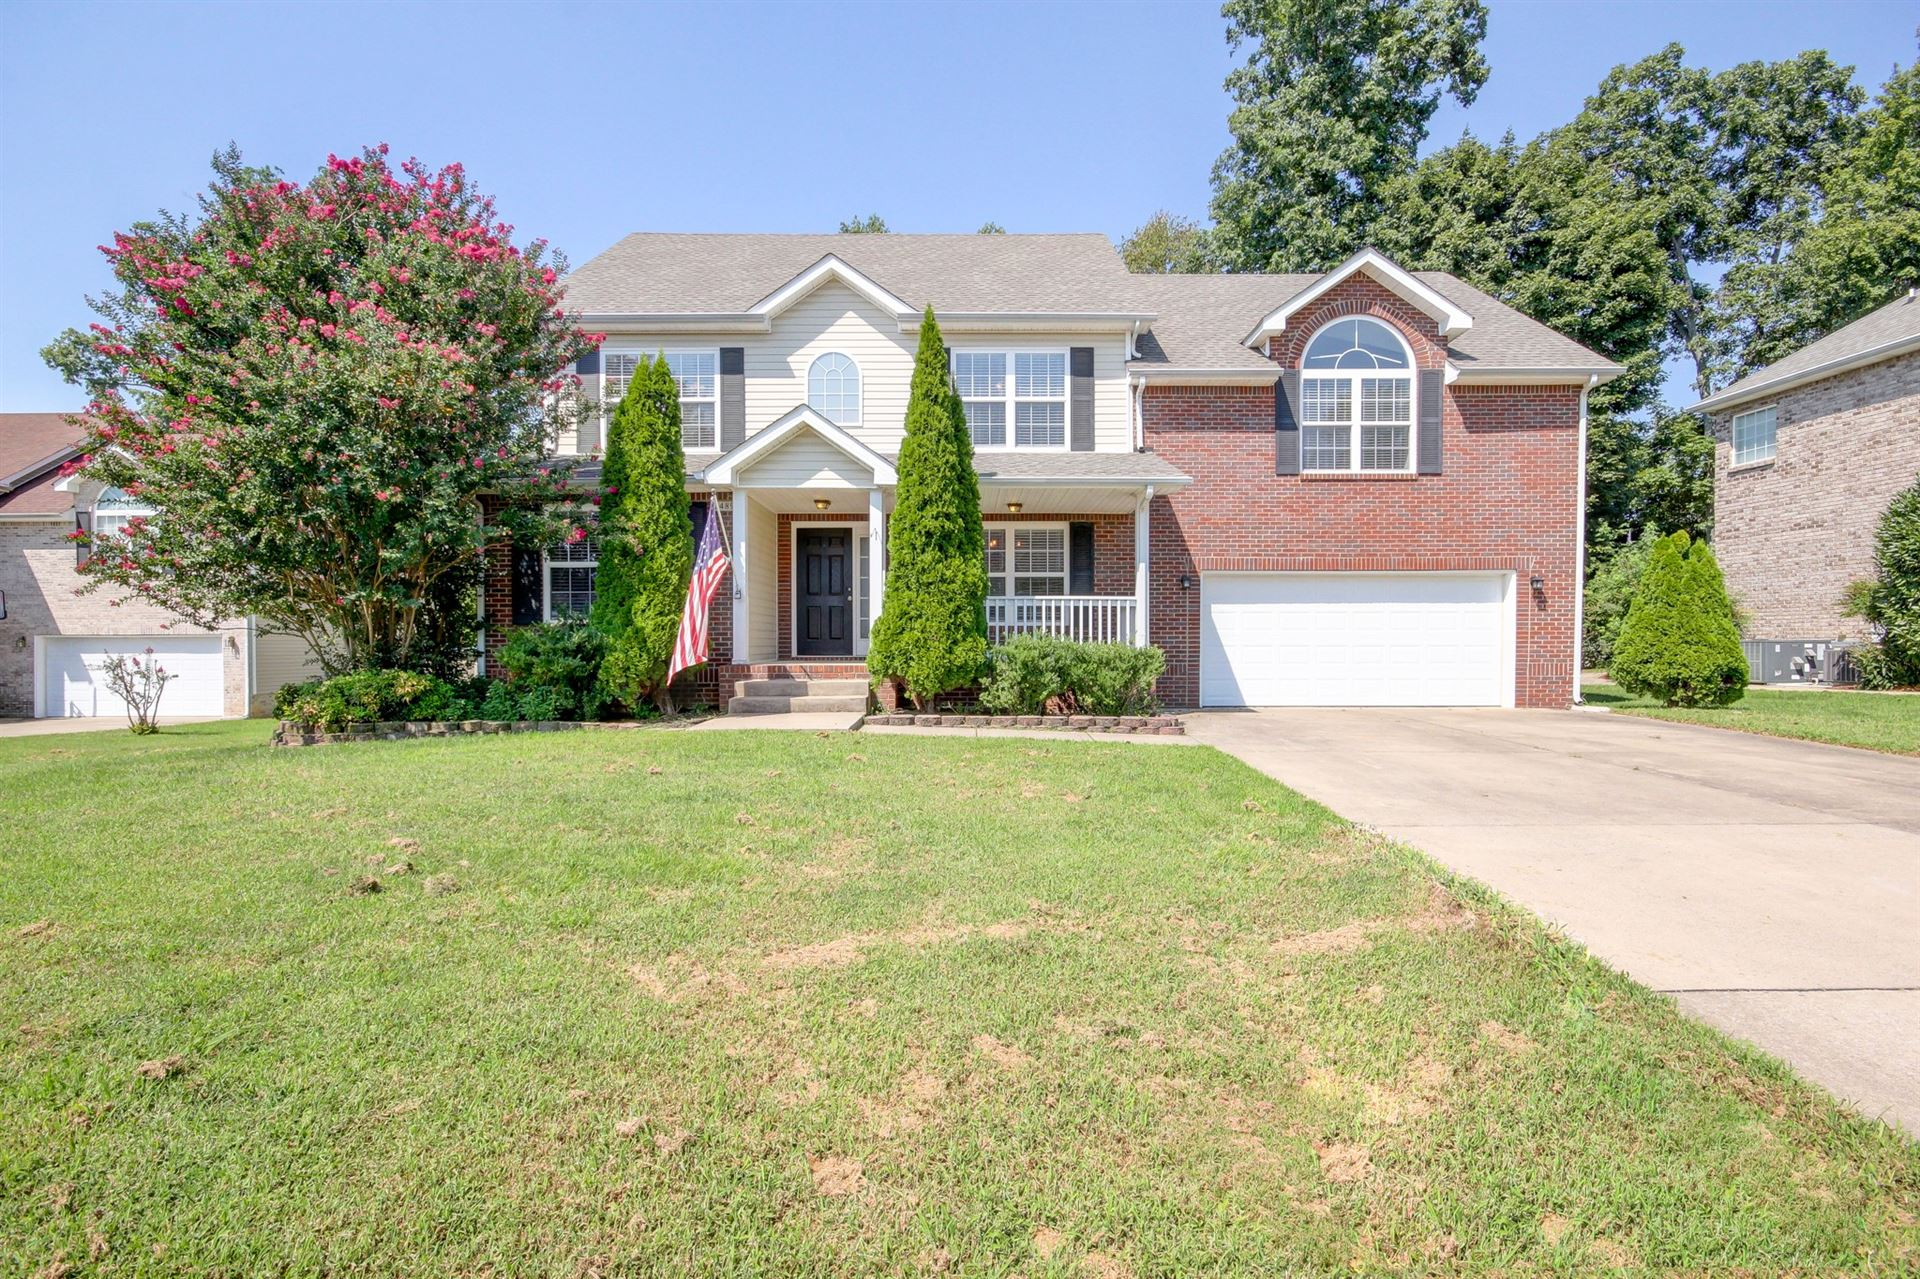 2489 Hattington Dr, Clarksville, TN 37042 - MLS#: 2188492